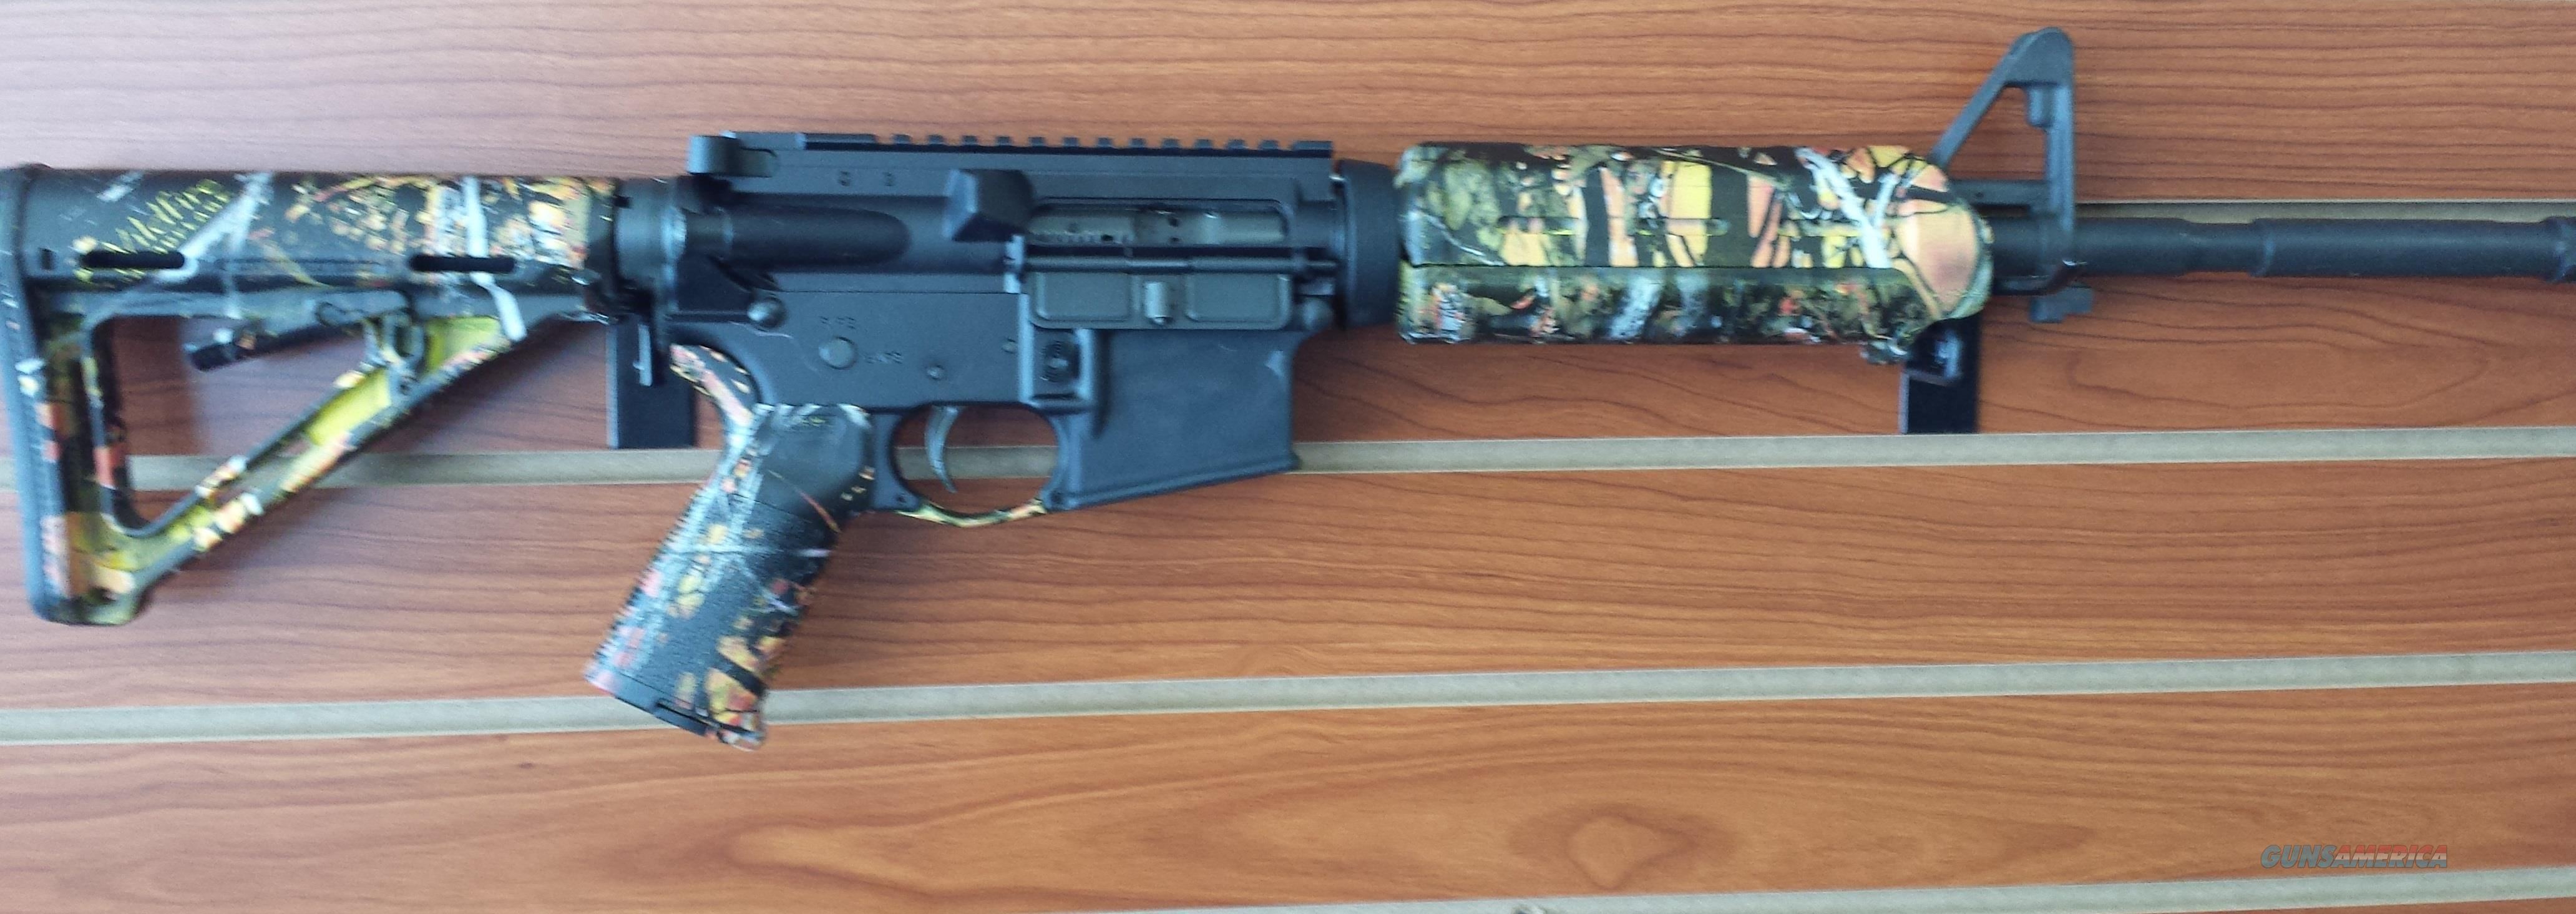 COLT AR15 Wildfire Camo Rifle  Guns > Rifles > Colt Military/Tactical Rifles